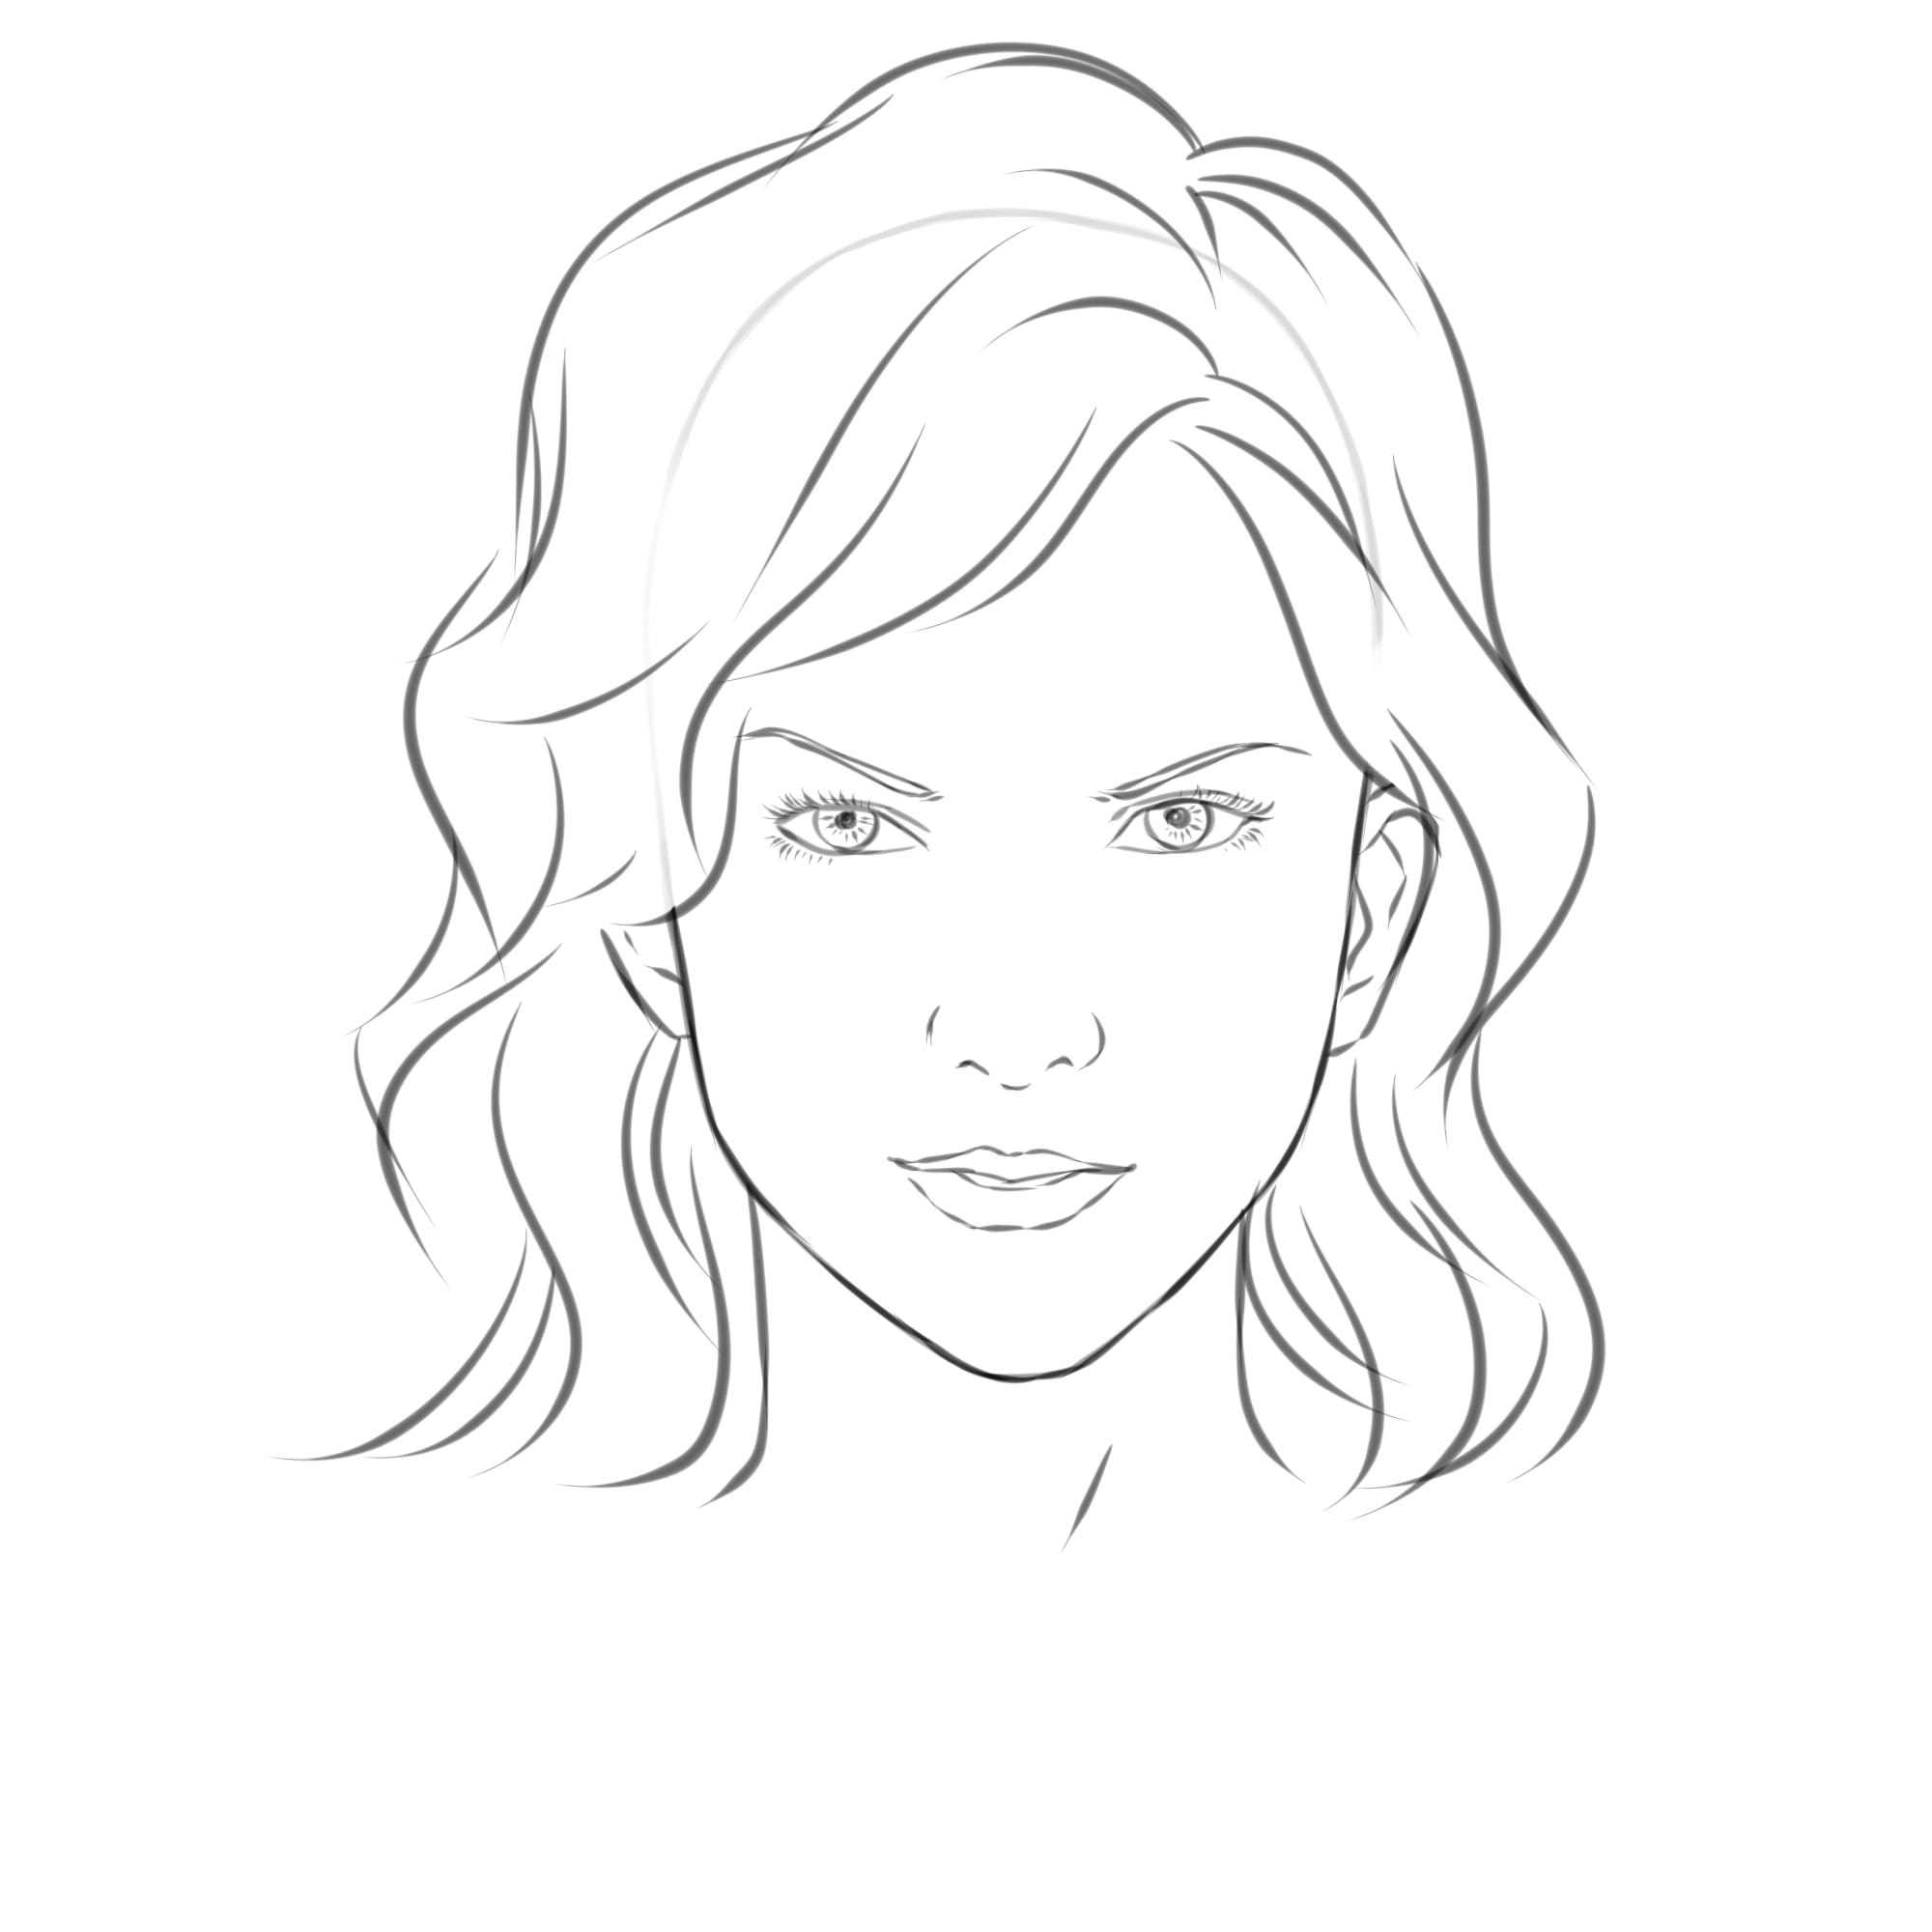 Face Drawing Template at GetDrawings.com | Free for personal use ...